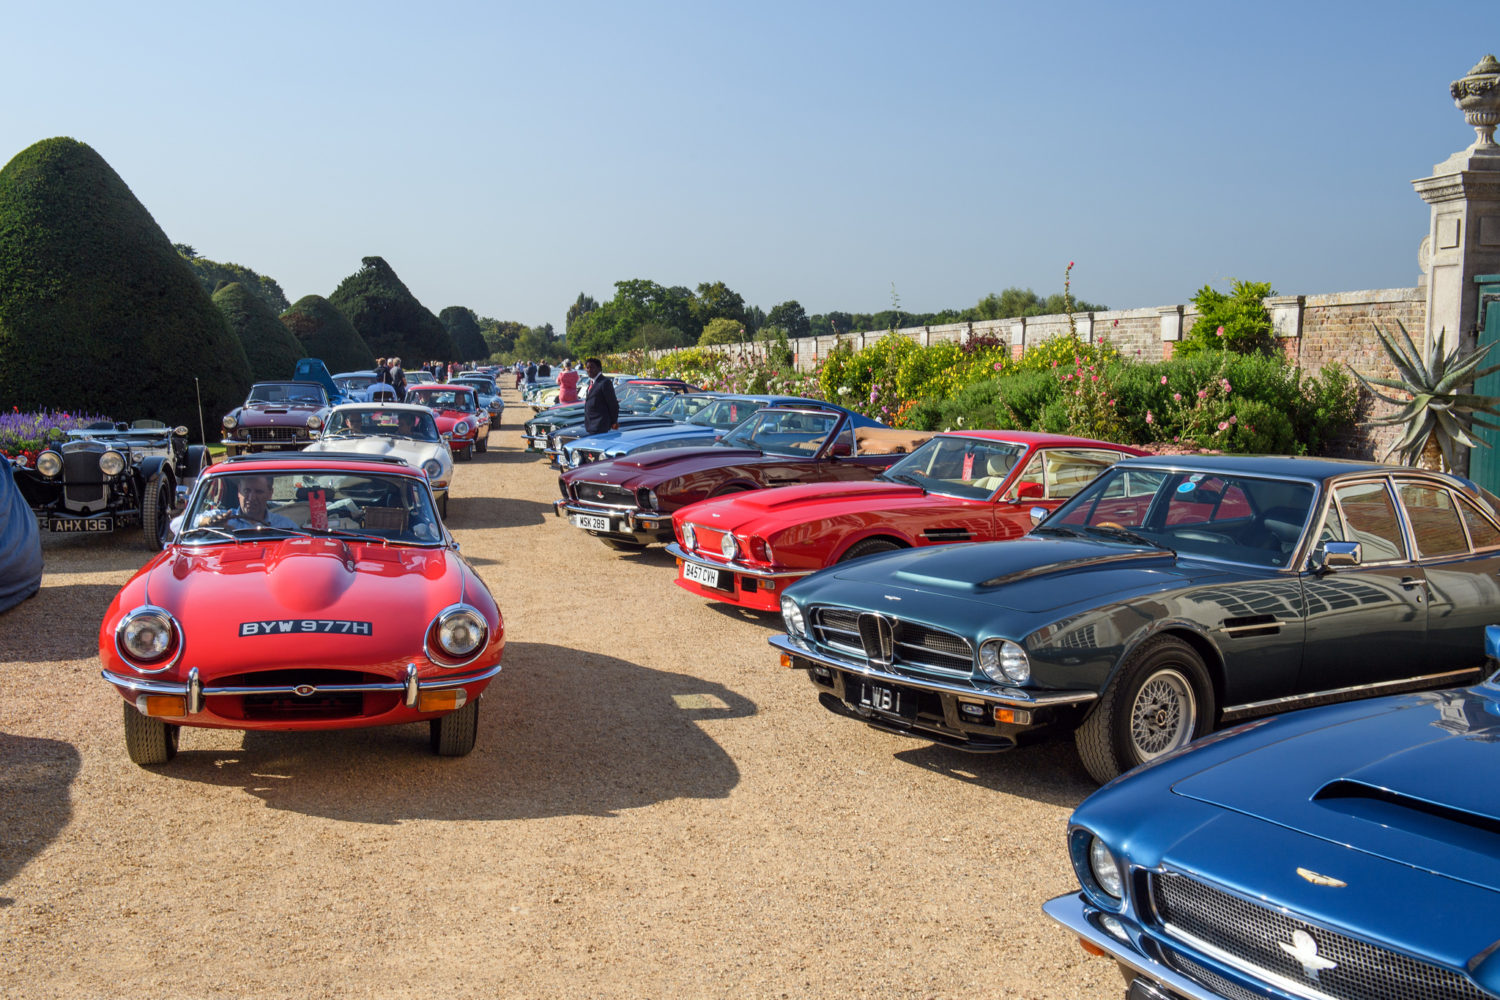 Bridge of Weir 'British Legends' at Concours 2018